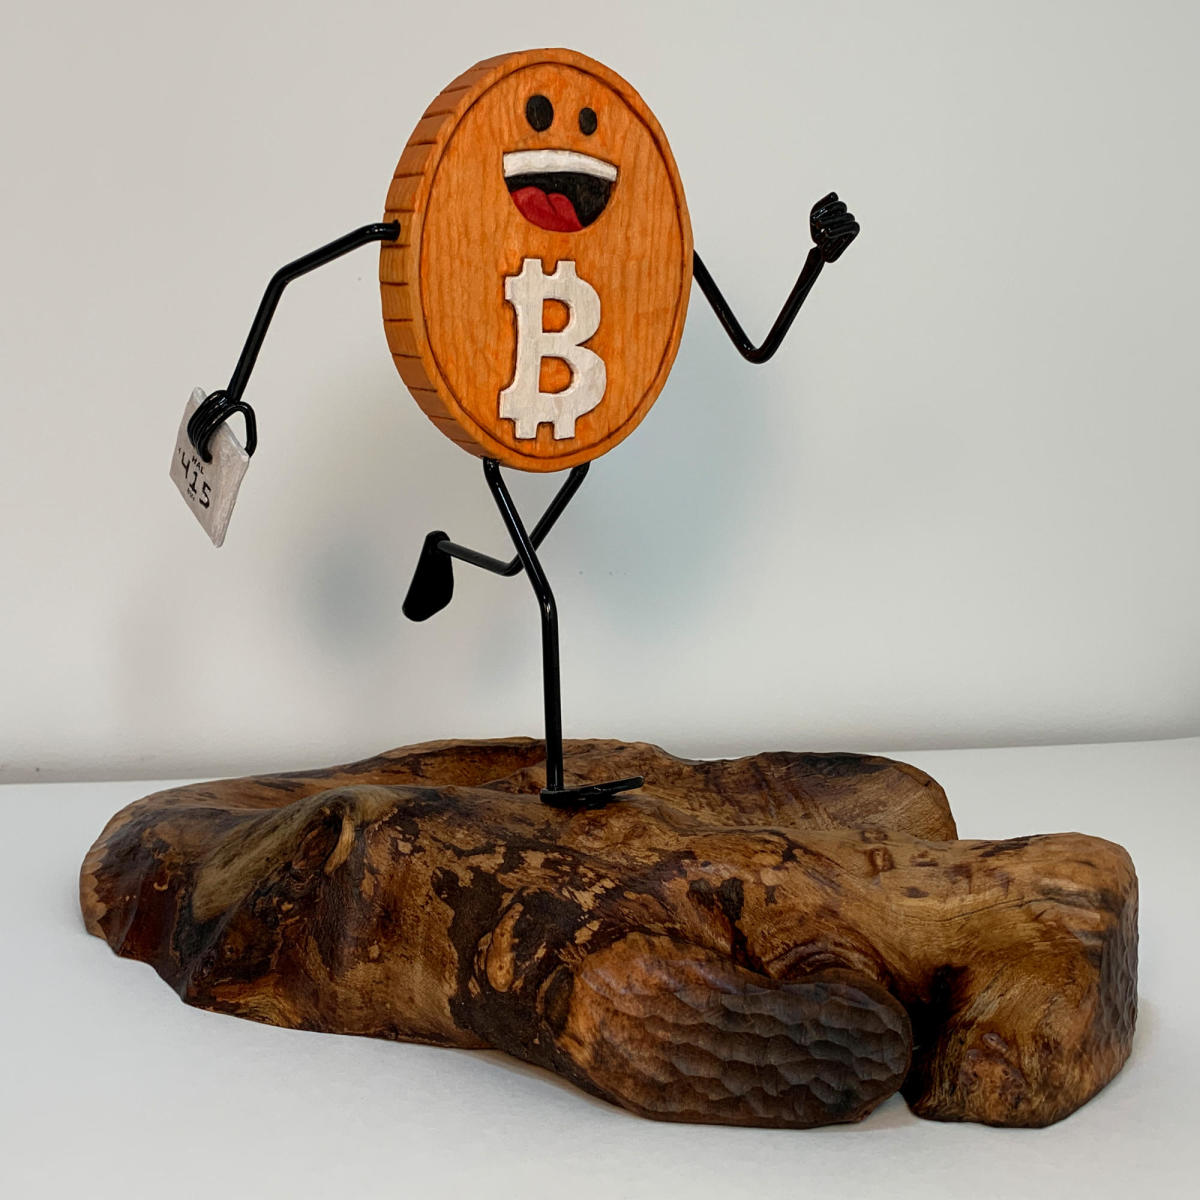 hal finney running bitcoin dedication sculpture